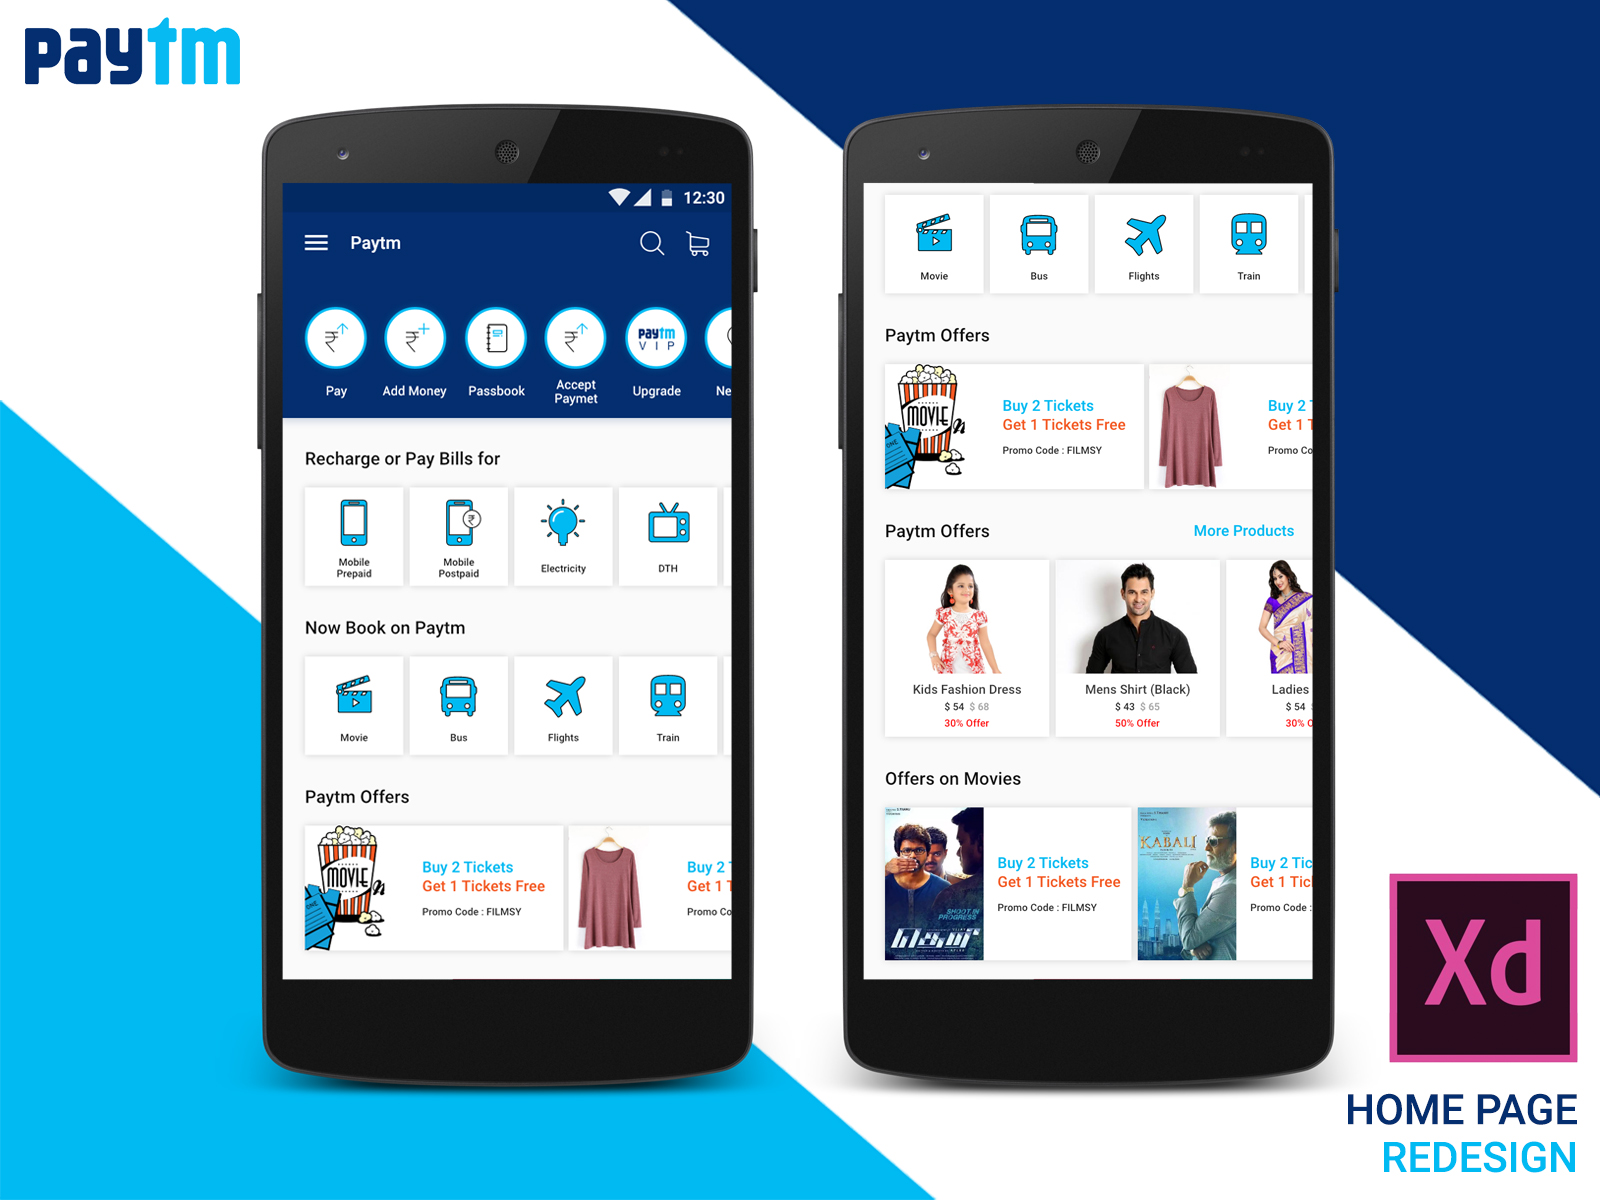 Paytm Home Page Concept Design - Uplabs